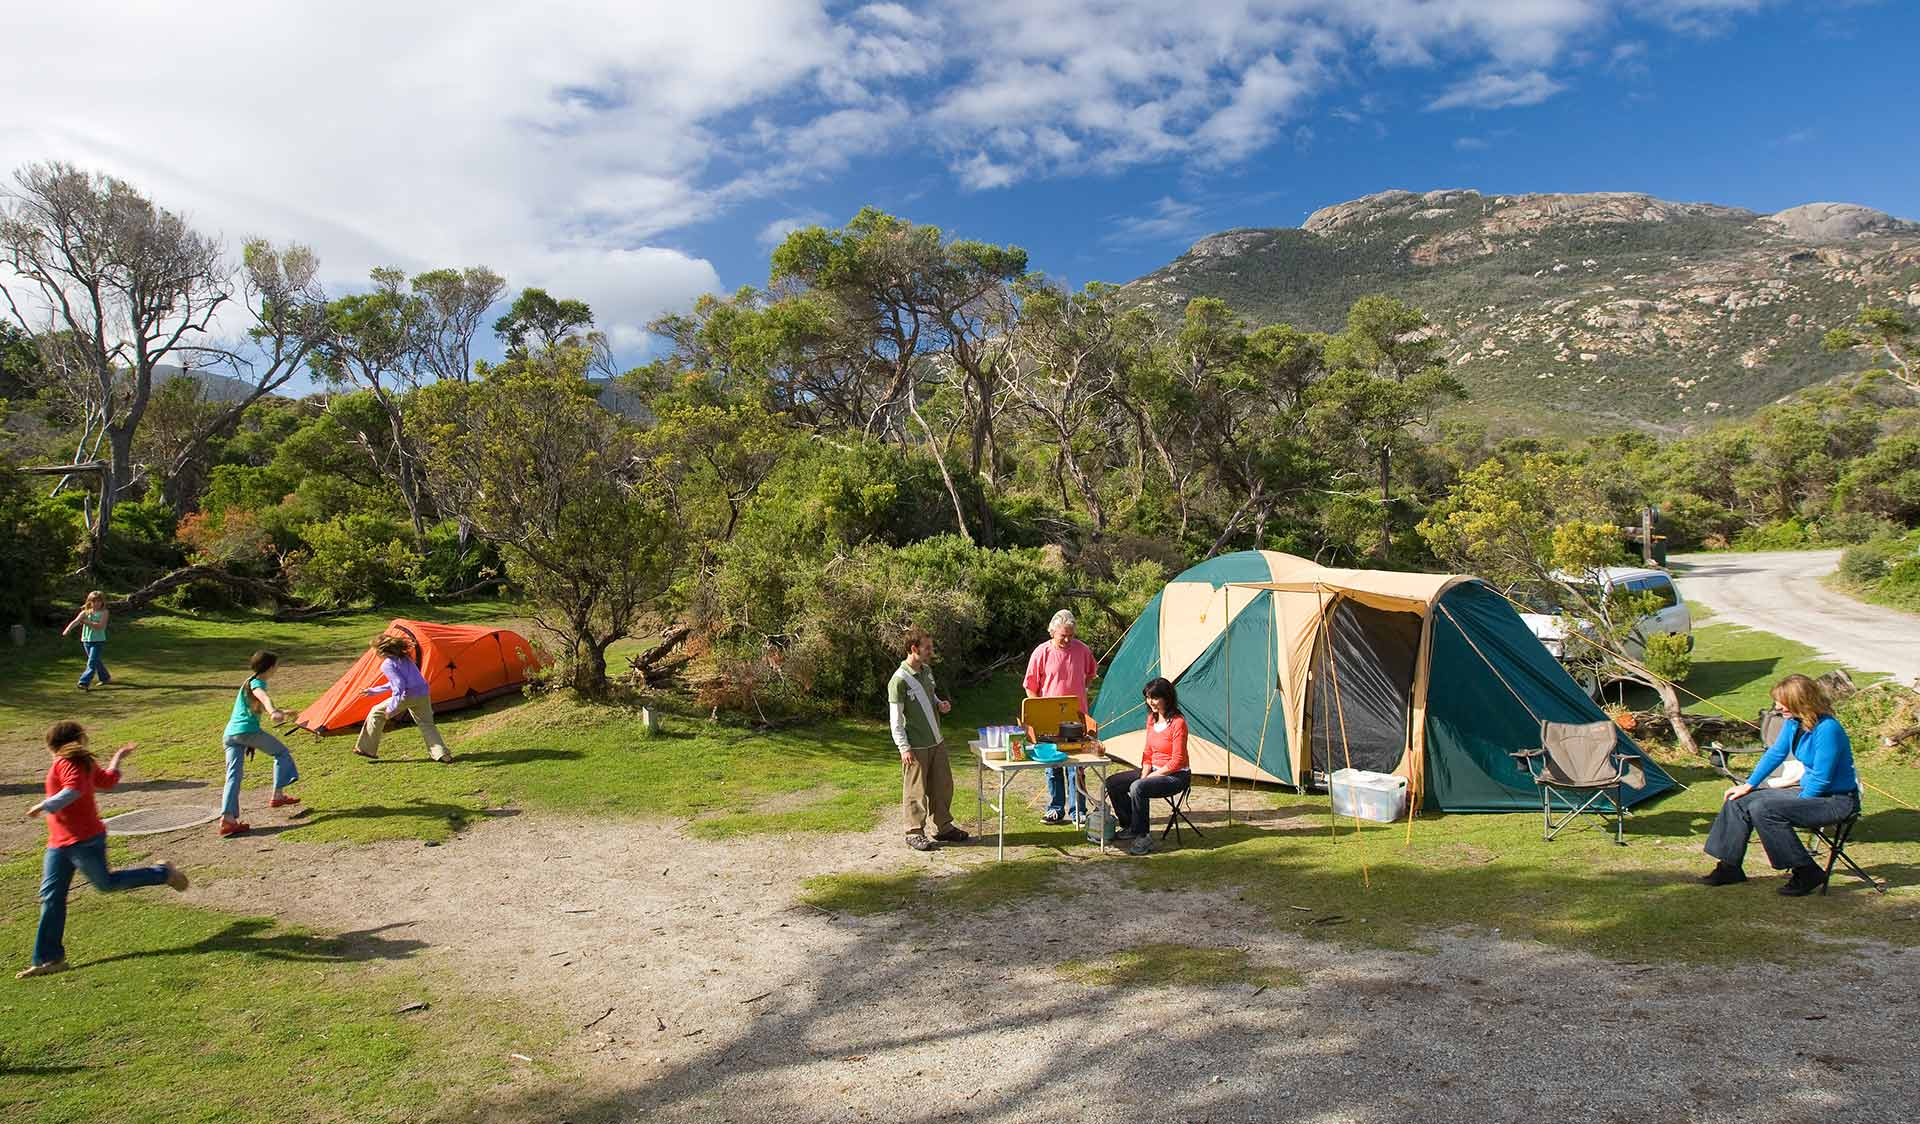 A family set up camp at Tidal River Camp Ground at Wilsons Promontory National Park.